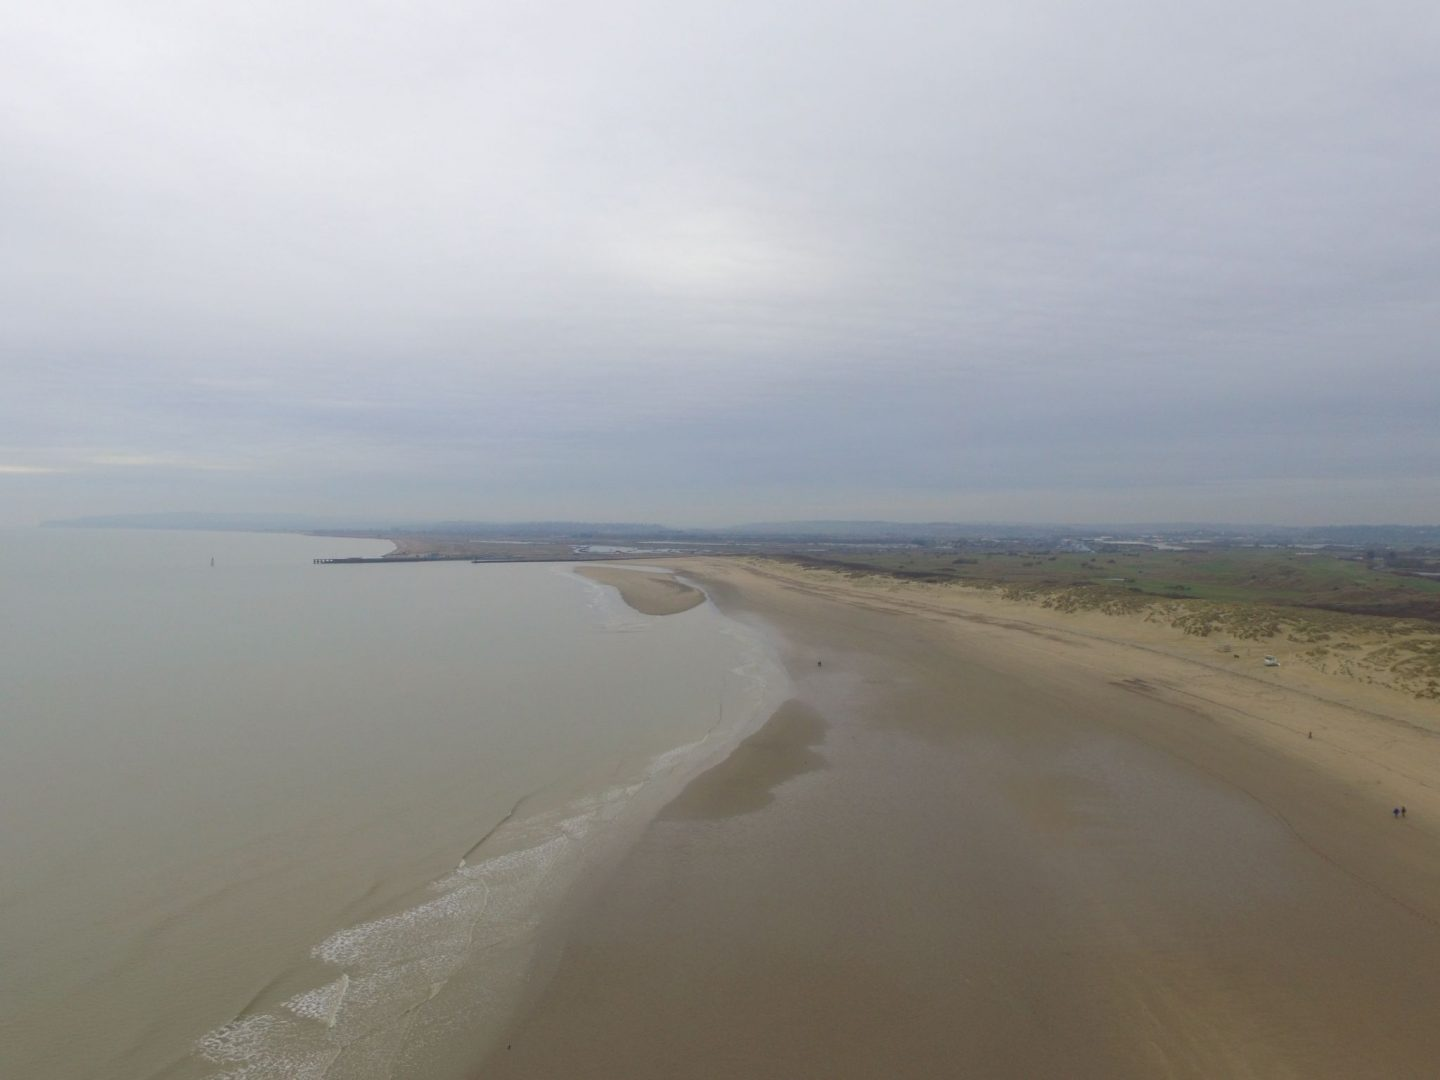 Drone photography tutorial, drone photography, DJI Phantom,. DJI phantom drone, Camber Sands, Camber Sands beach, East Sussex coast, dadbloguk, dadbloguk.com, uk dad blog, uk dad blogger, school run dad